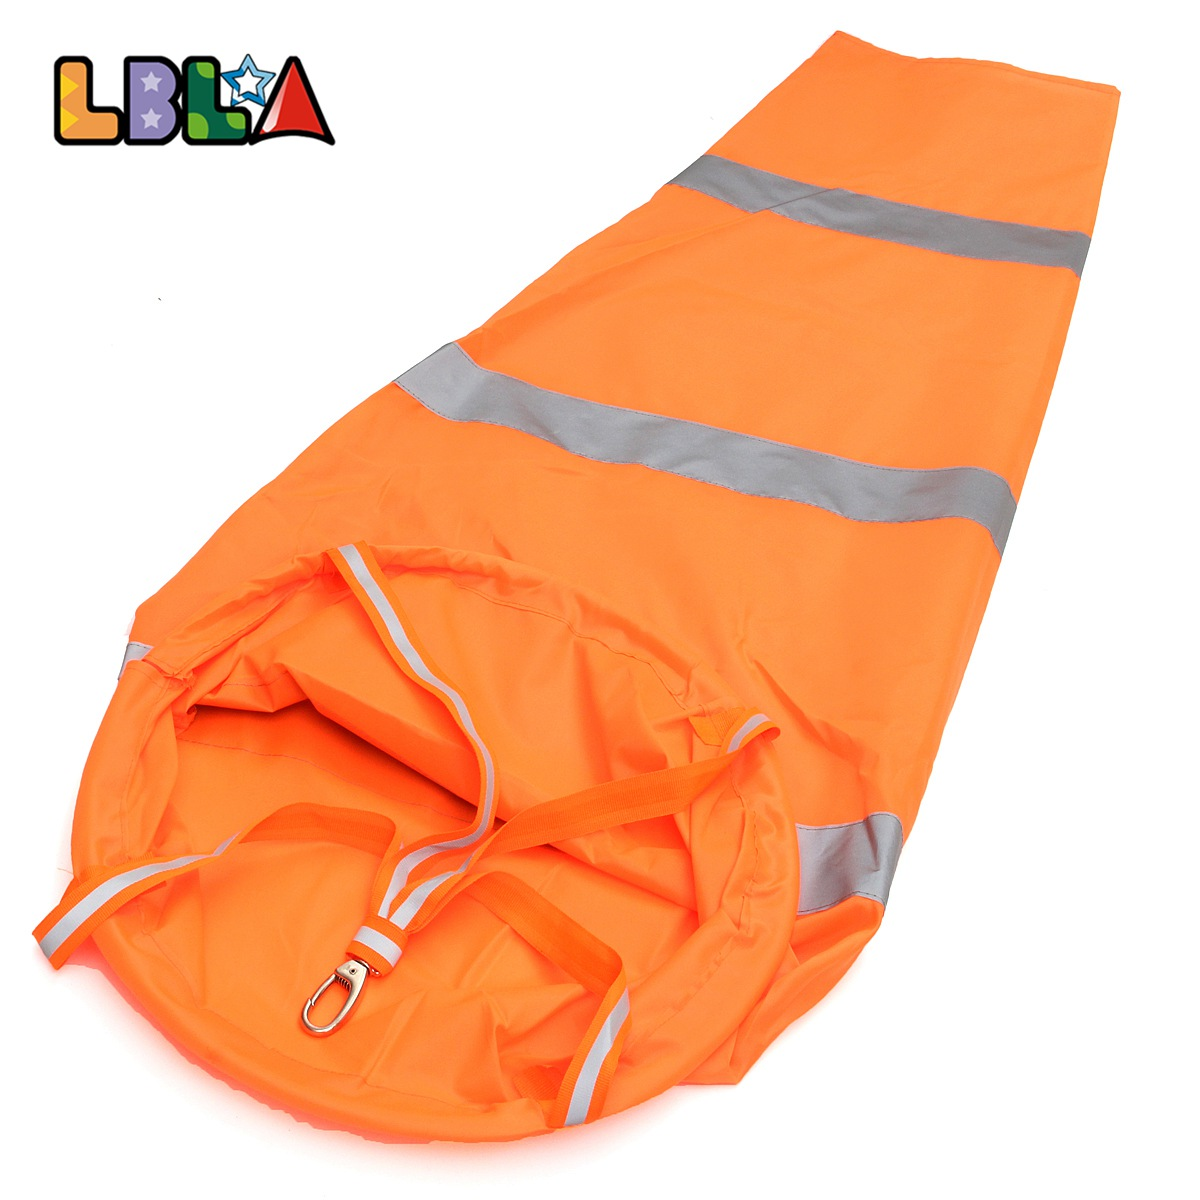 LBLA 1 pcs Aviation Windsock Rip-stop Wind Measurement Sock Bag Reflective Belt Wind Monitoring Outdoor Toy Indicator 100cm enhanced windsock wind vane double frame skeleton